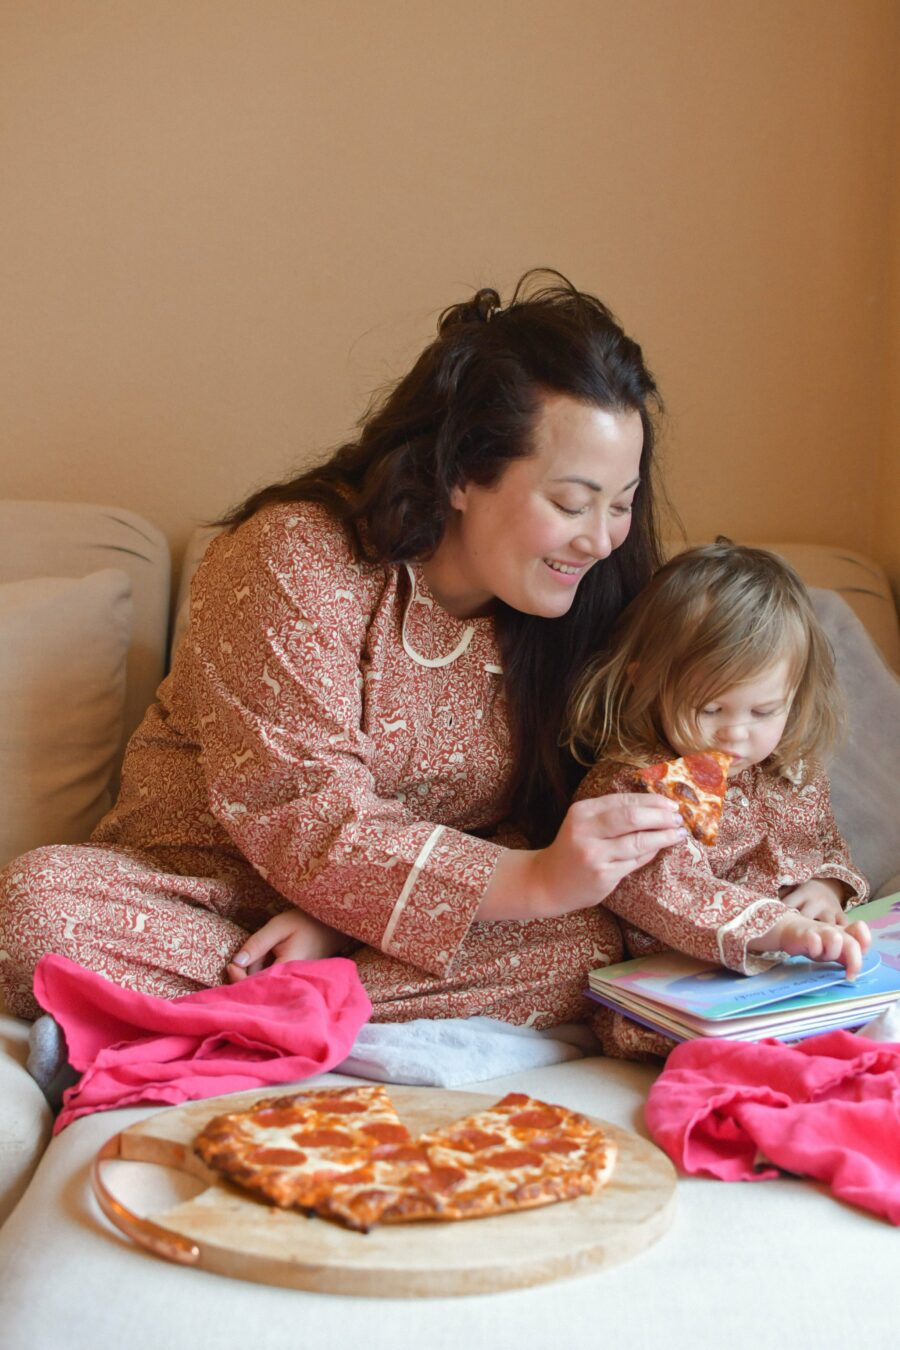 New Year's Resolutions by popular Monterey lifestyle blog, Haute Beauty Guide: image of a mom and her young daughter wearing matching pajamas and sitting in bed eating pizza.